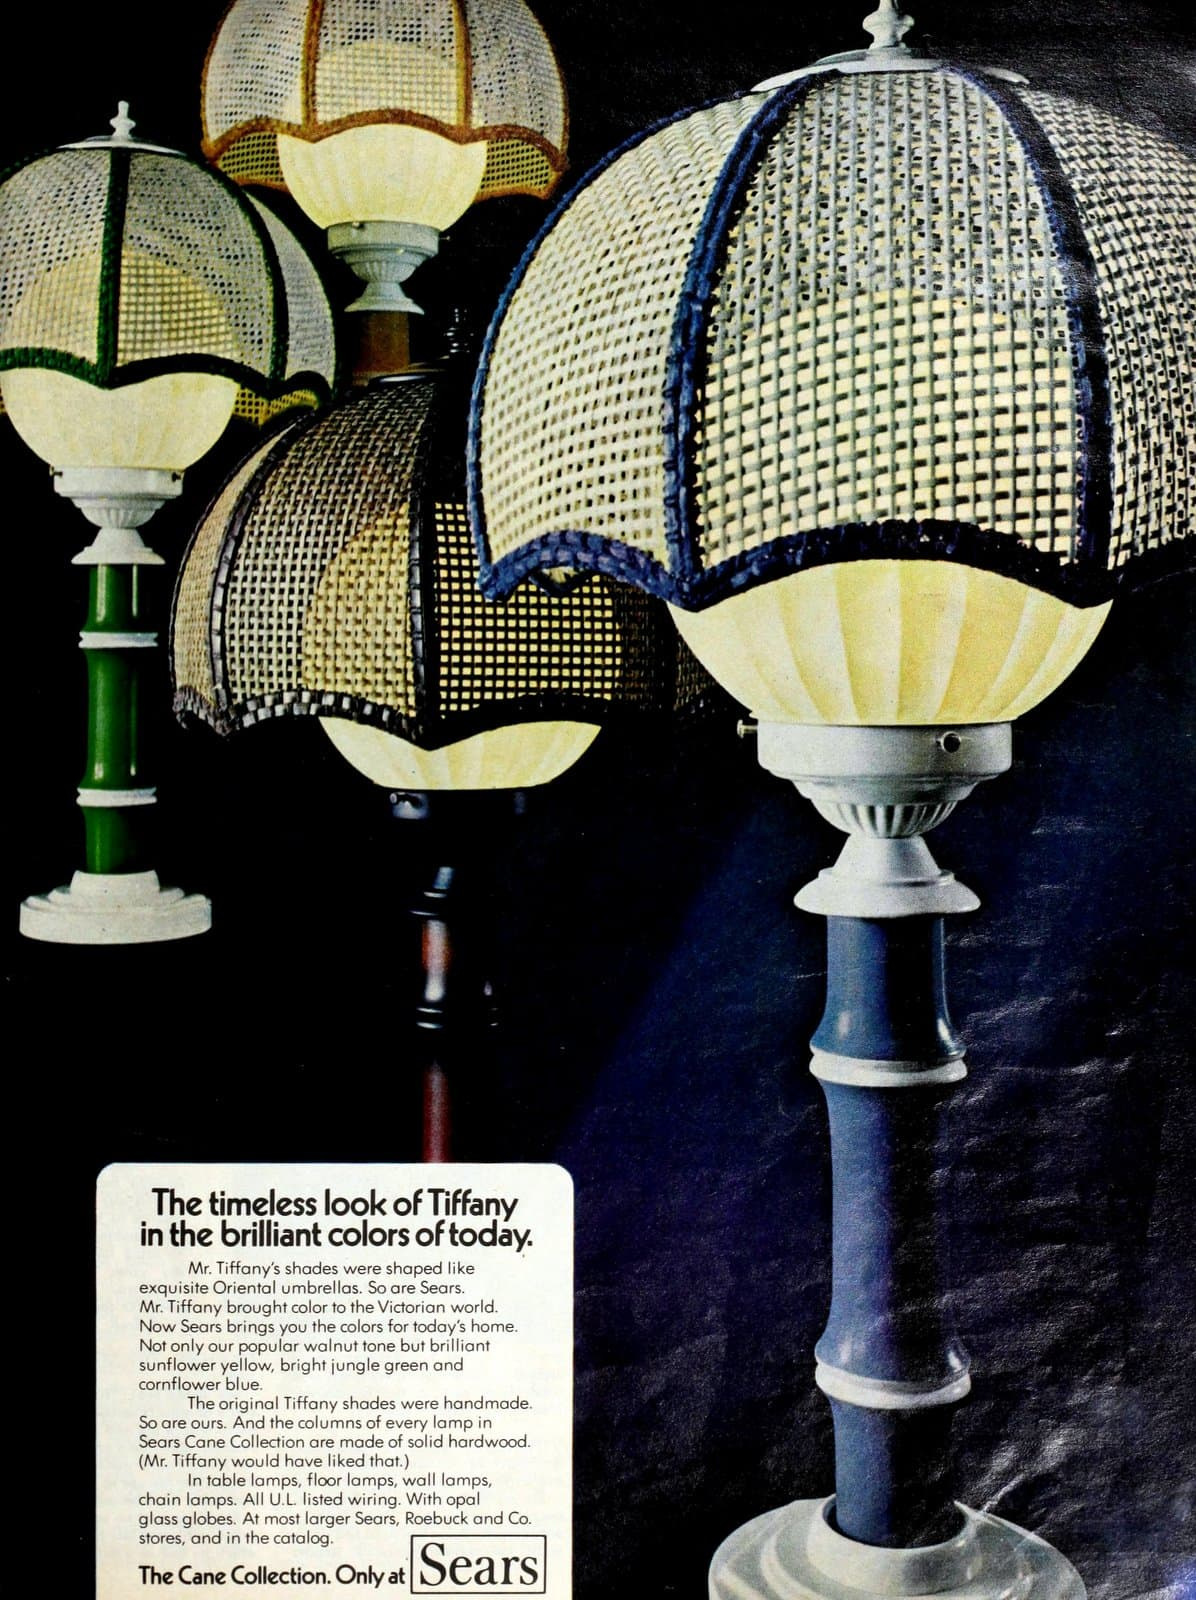 Cane lampshades on vintage 1970s Sears painted wood lamp bases (1973)